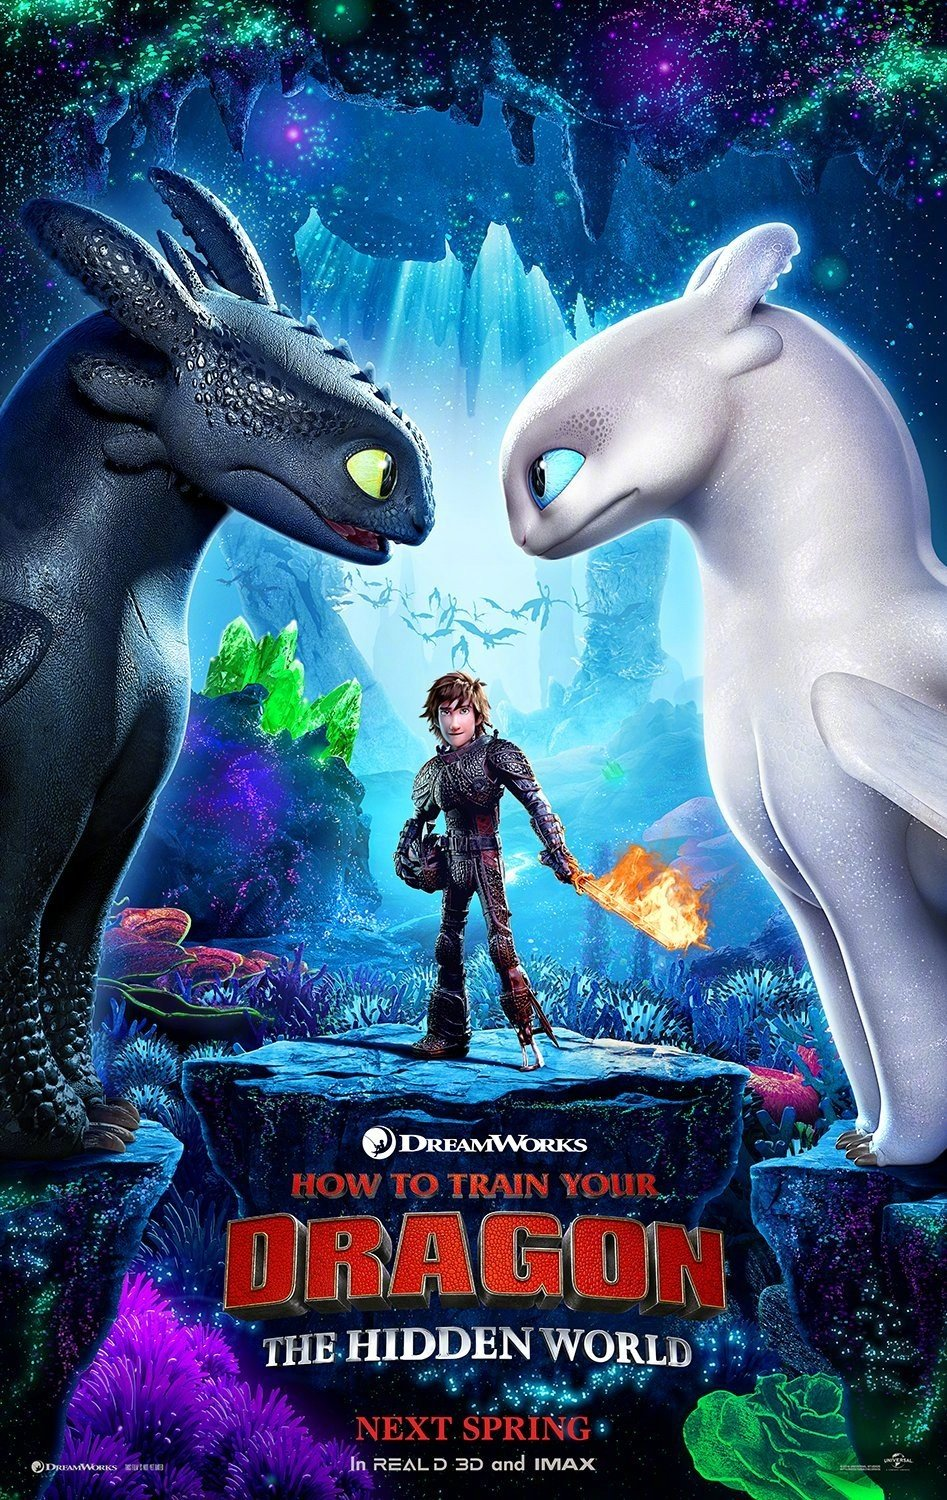 How To Train Your Dragon: The Hidden World 驯龙高手:隐秘的世界